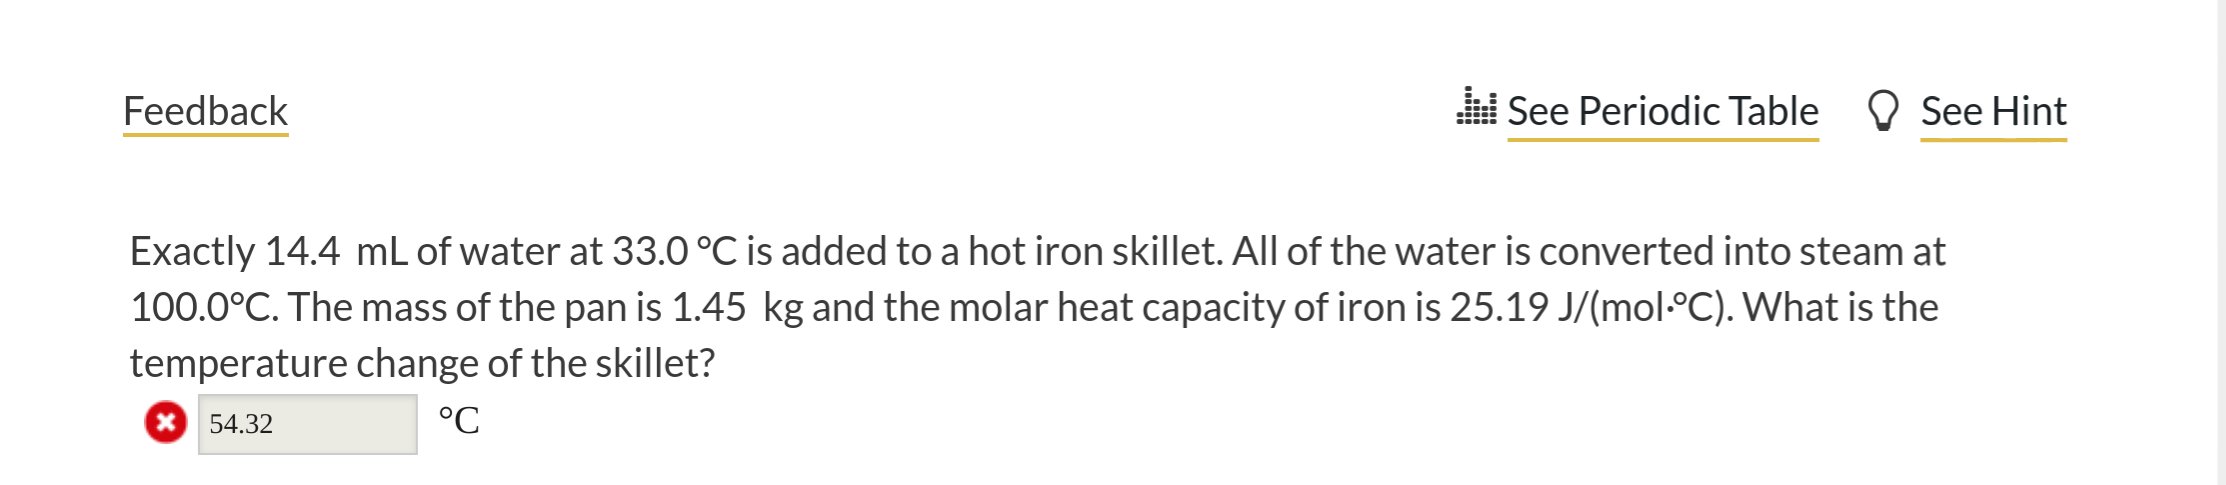 See Periodic Table Feedback See Hint Exactly 14.4 mL of water at 33.0 °C is added to a hot iron skillet. All of the water is converted into steam at 100.0°C. The mass of the pan is 1.45 kg and the molar heat capacity of iron is 25.19 J/(molC). What is the temperature change of the skillet? °C 54.32